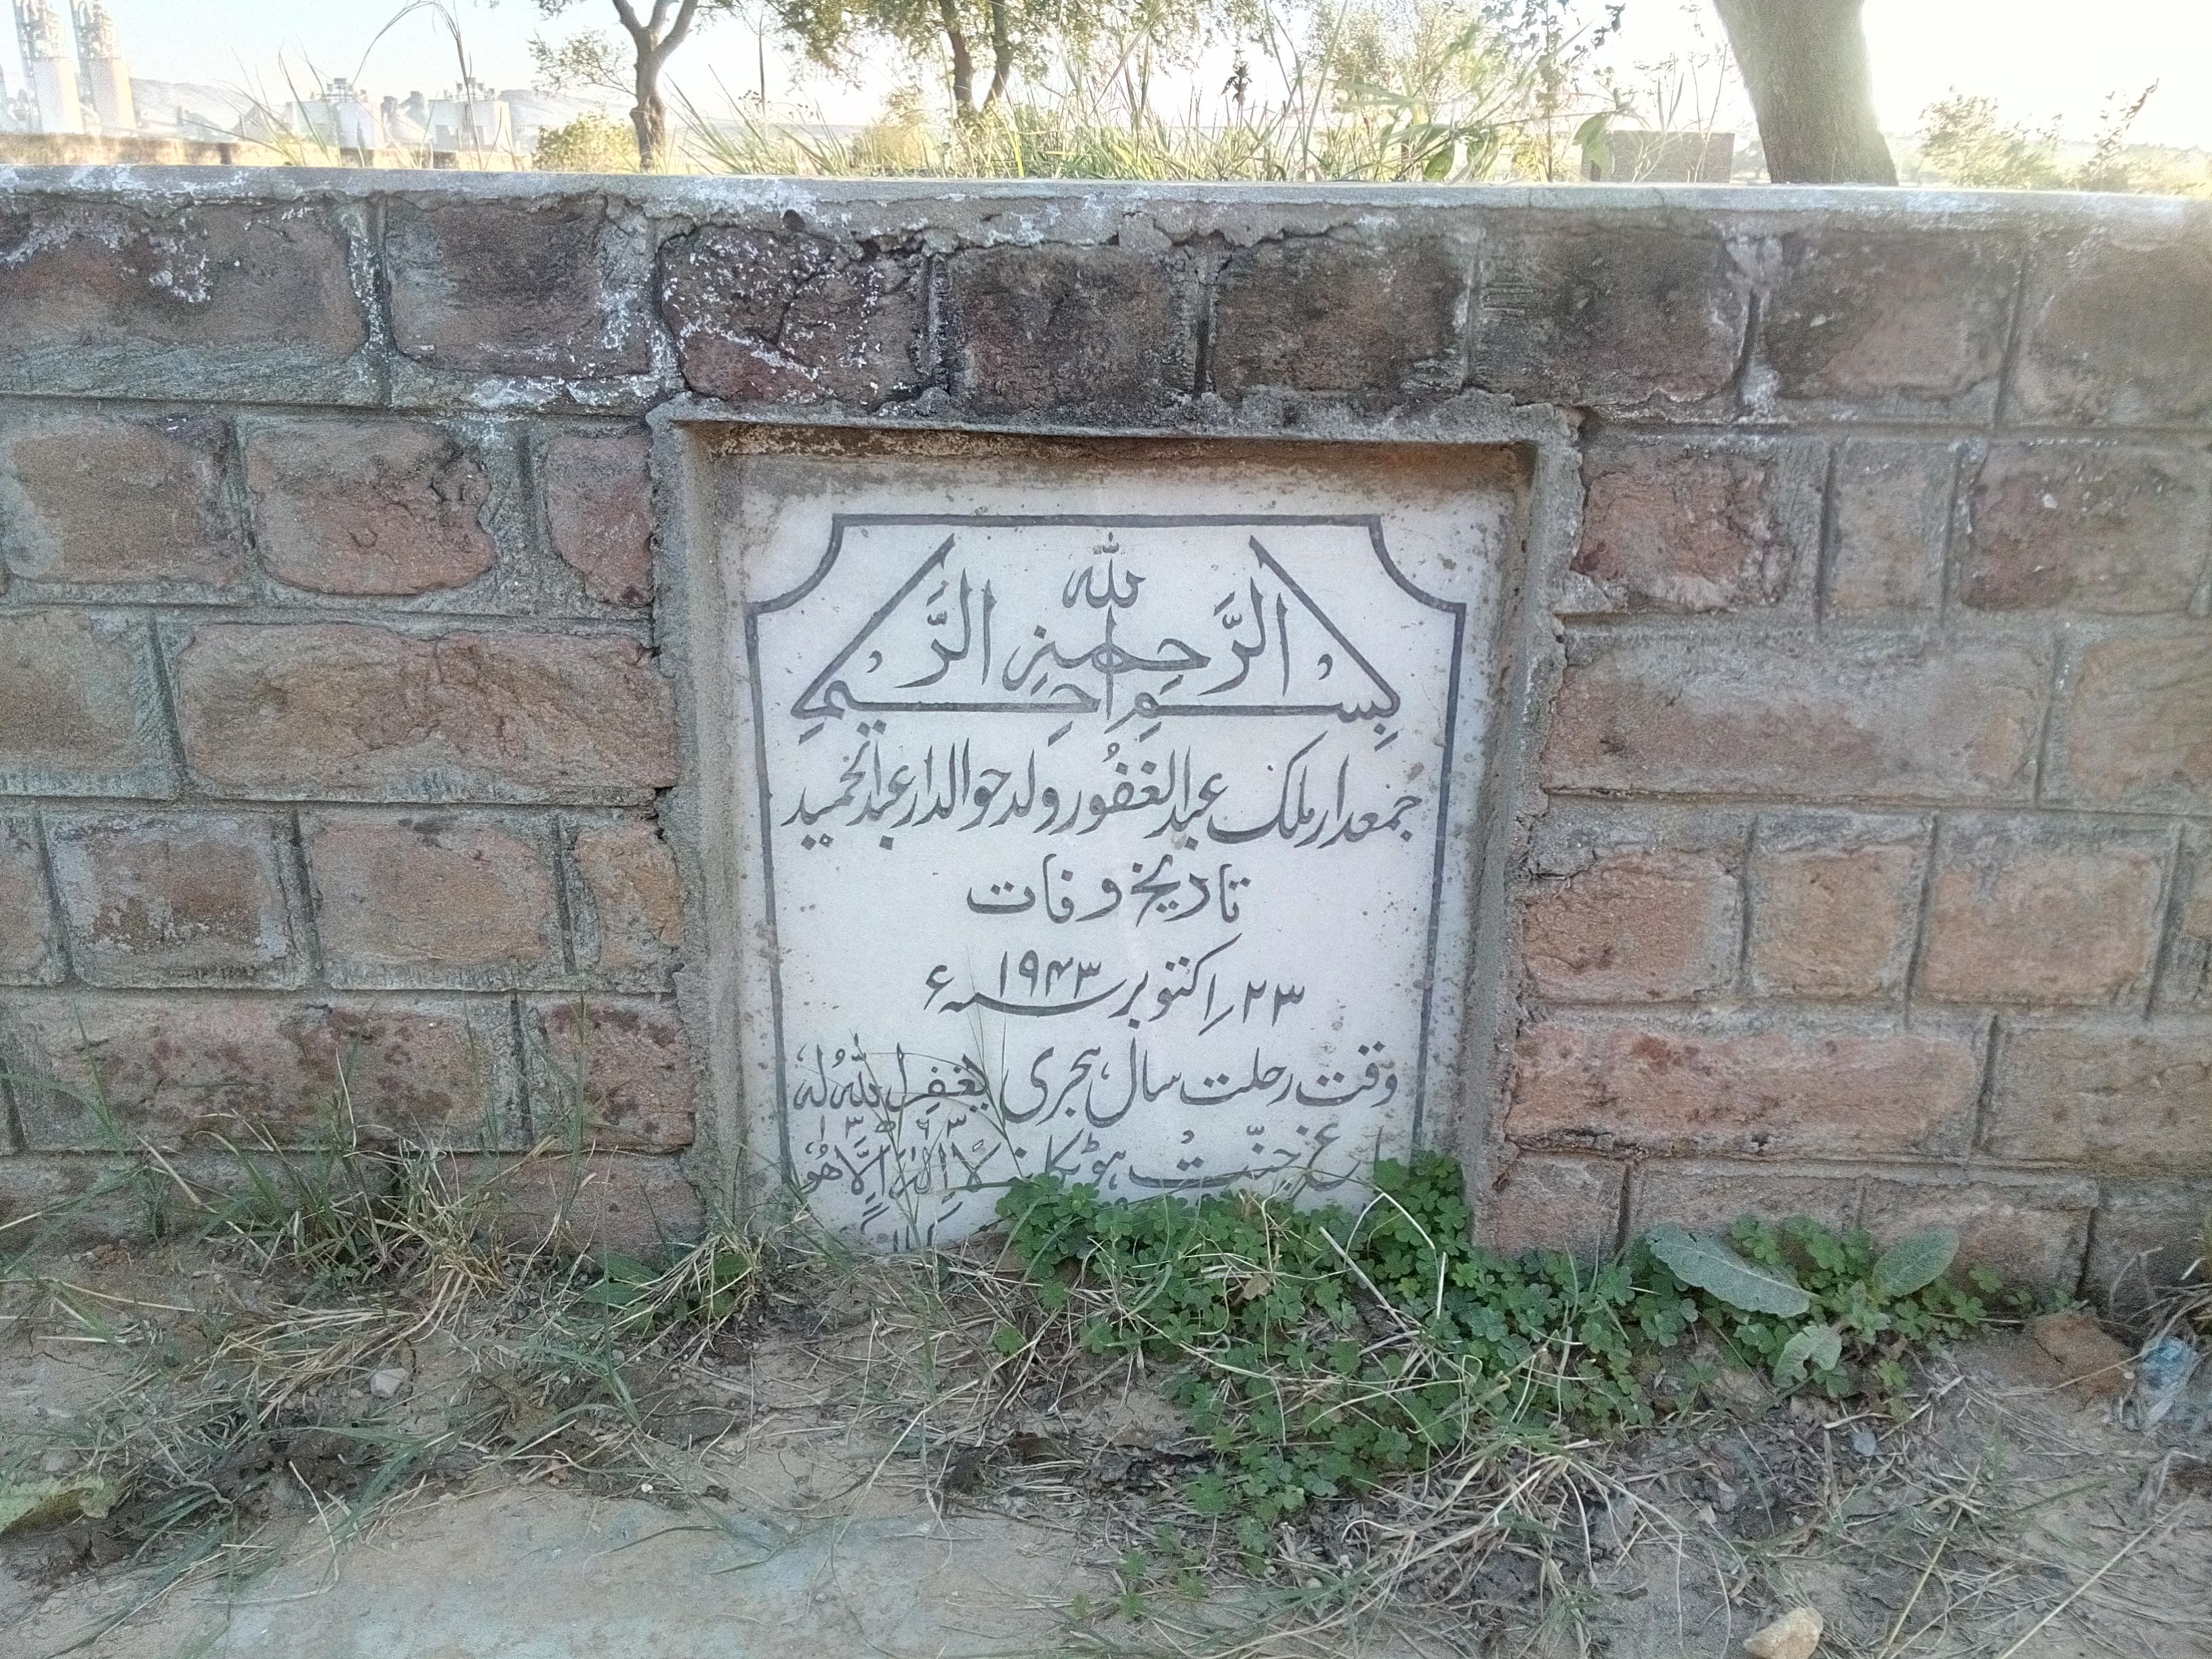 Jemmadar Malik Abdul Ghafoor son of Havildar Abdul Majeed died Oct 1943